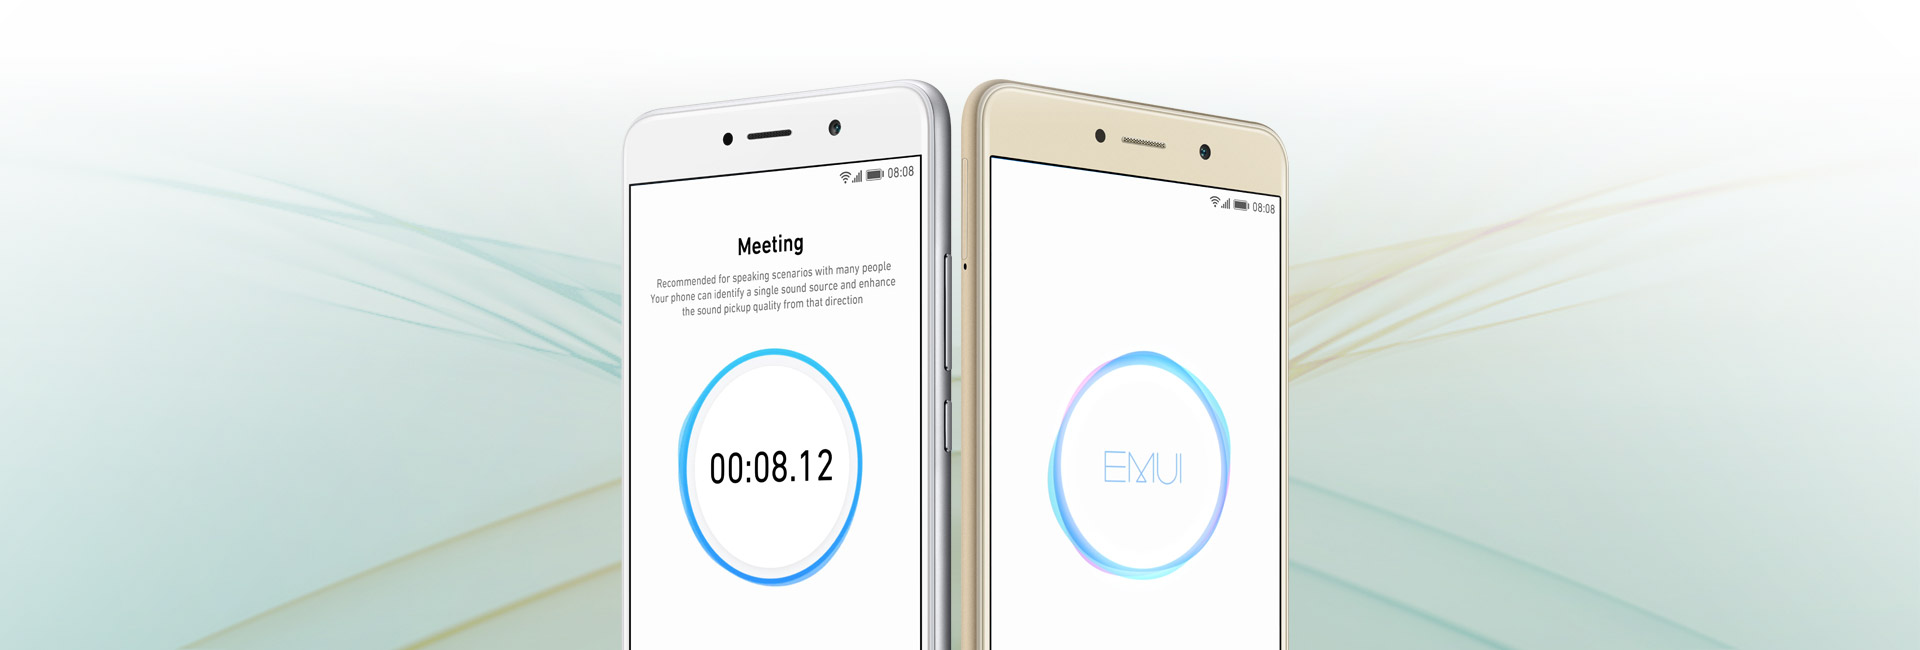 EMUI5.1, A Fresh New Experience